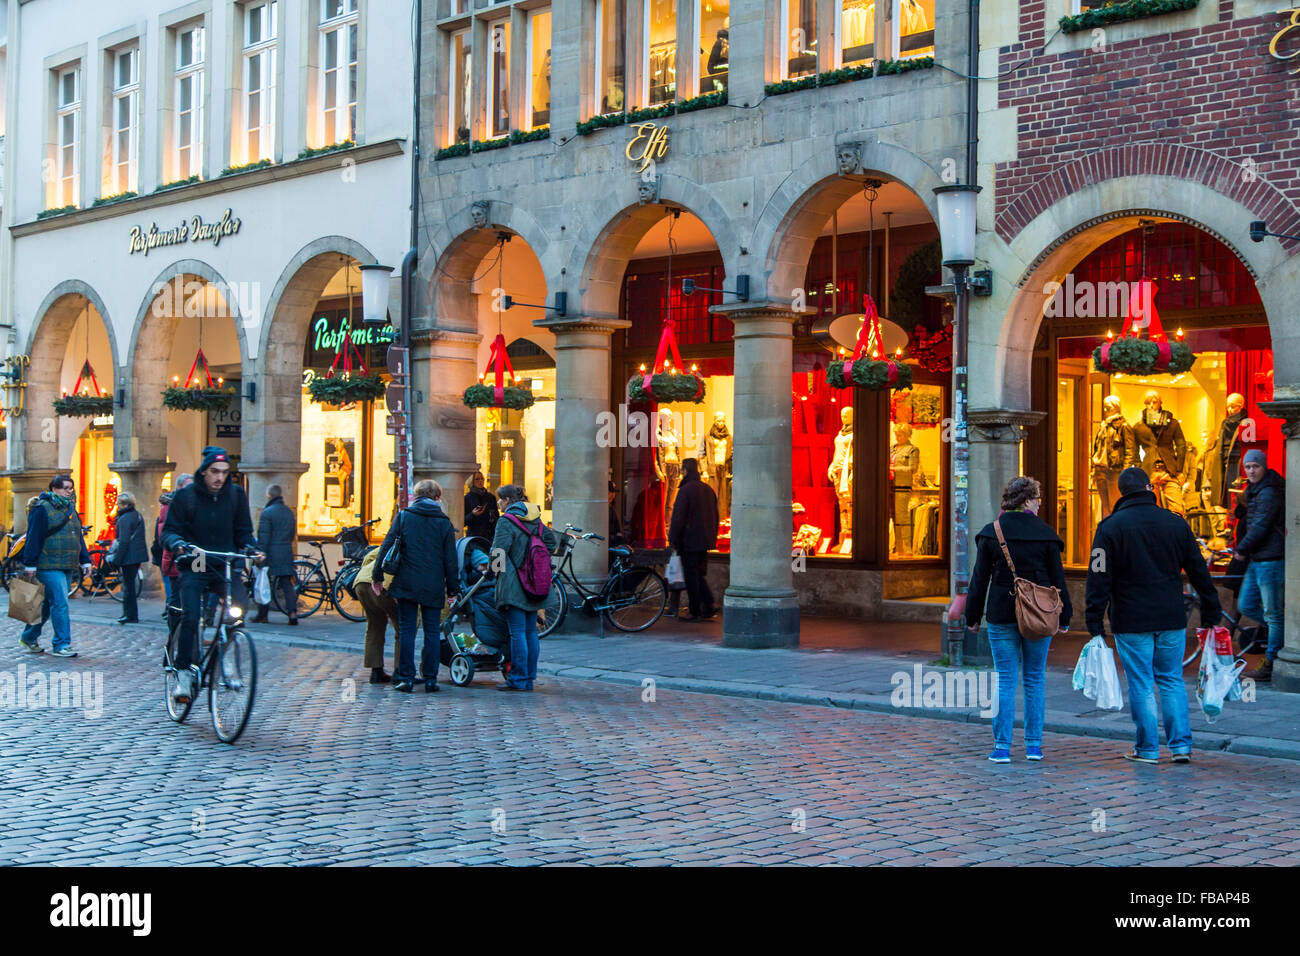 Old town city arcades in the old town, Münster, Westfalia, Germany, Christmas shopping, - Stock Image